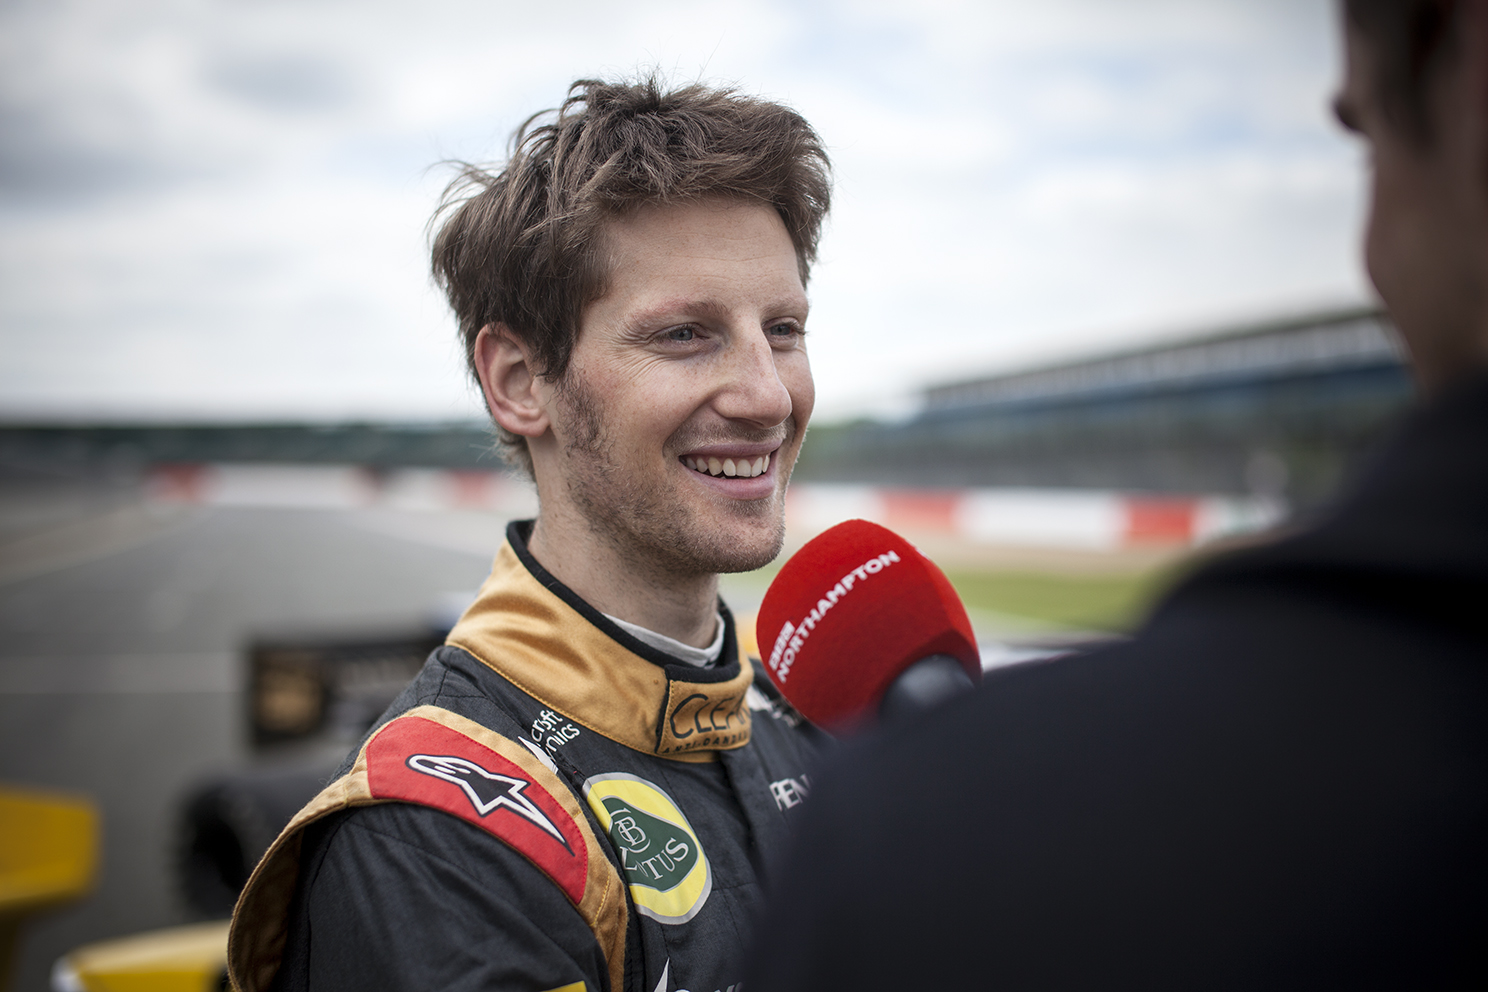 Romain Grosjean test drives Alain Prosts championship winning F1 car.